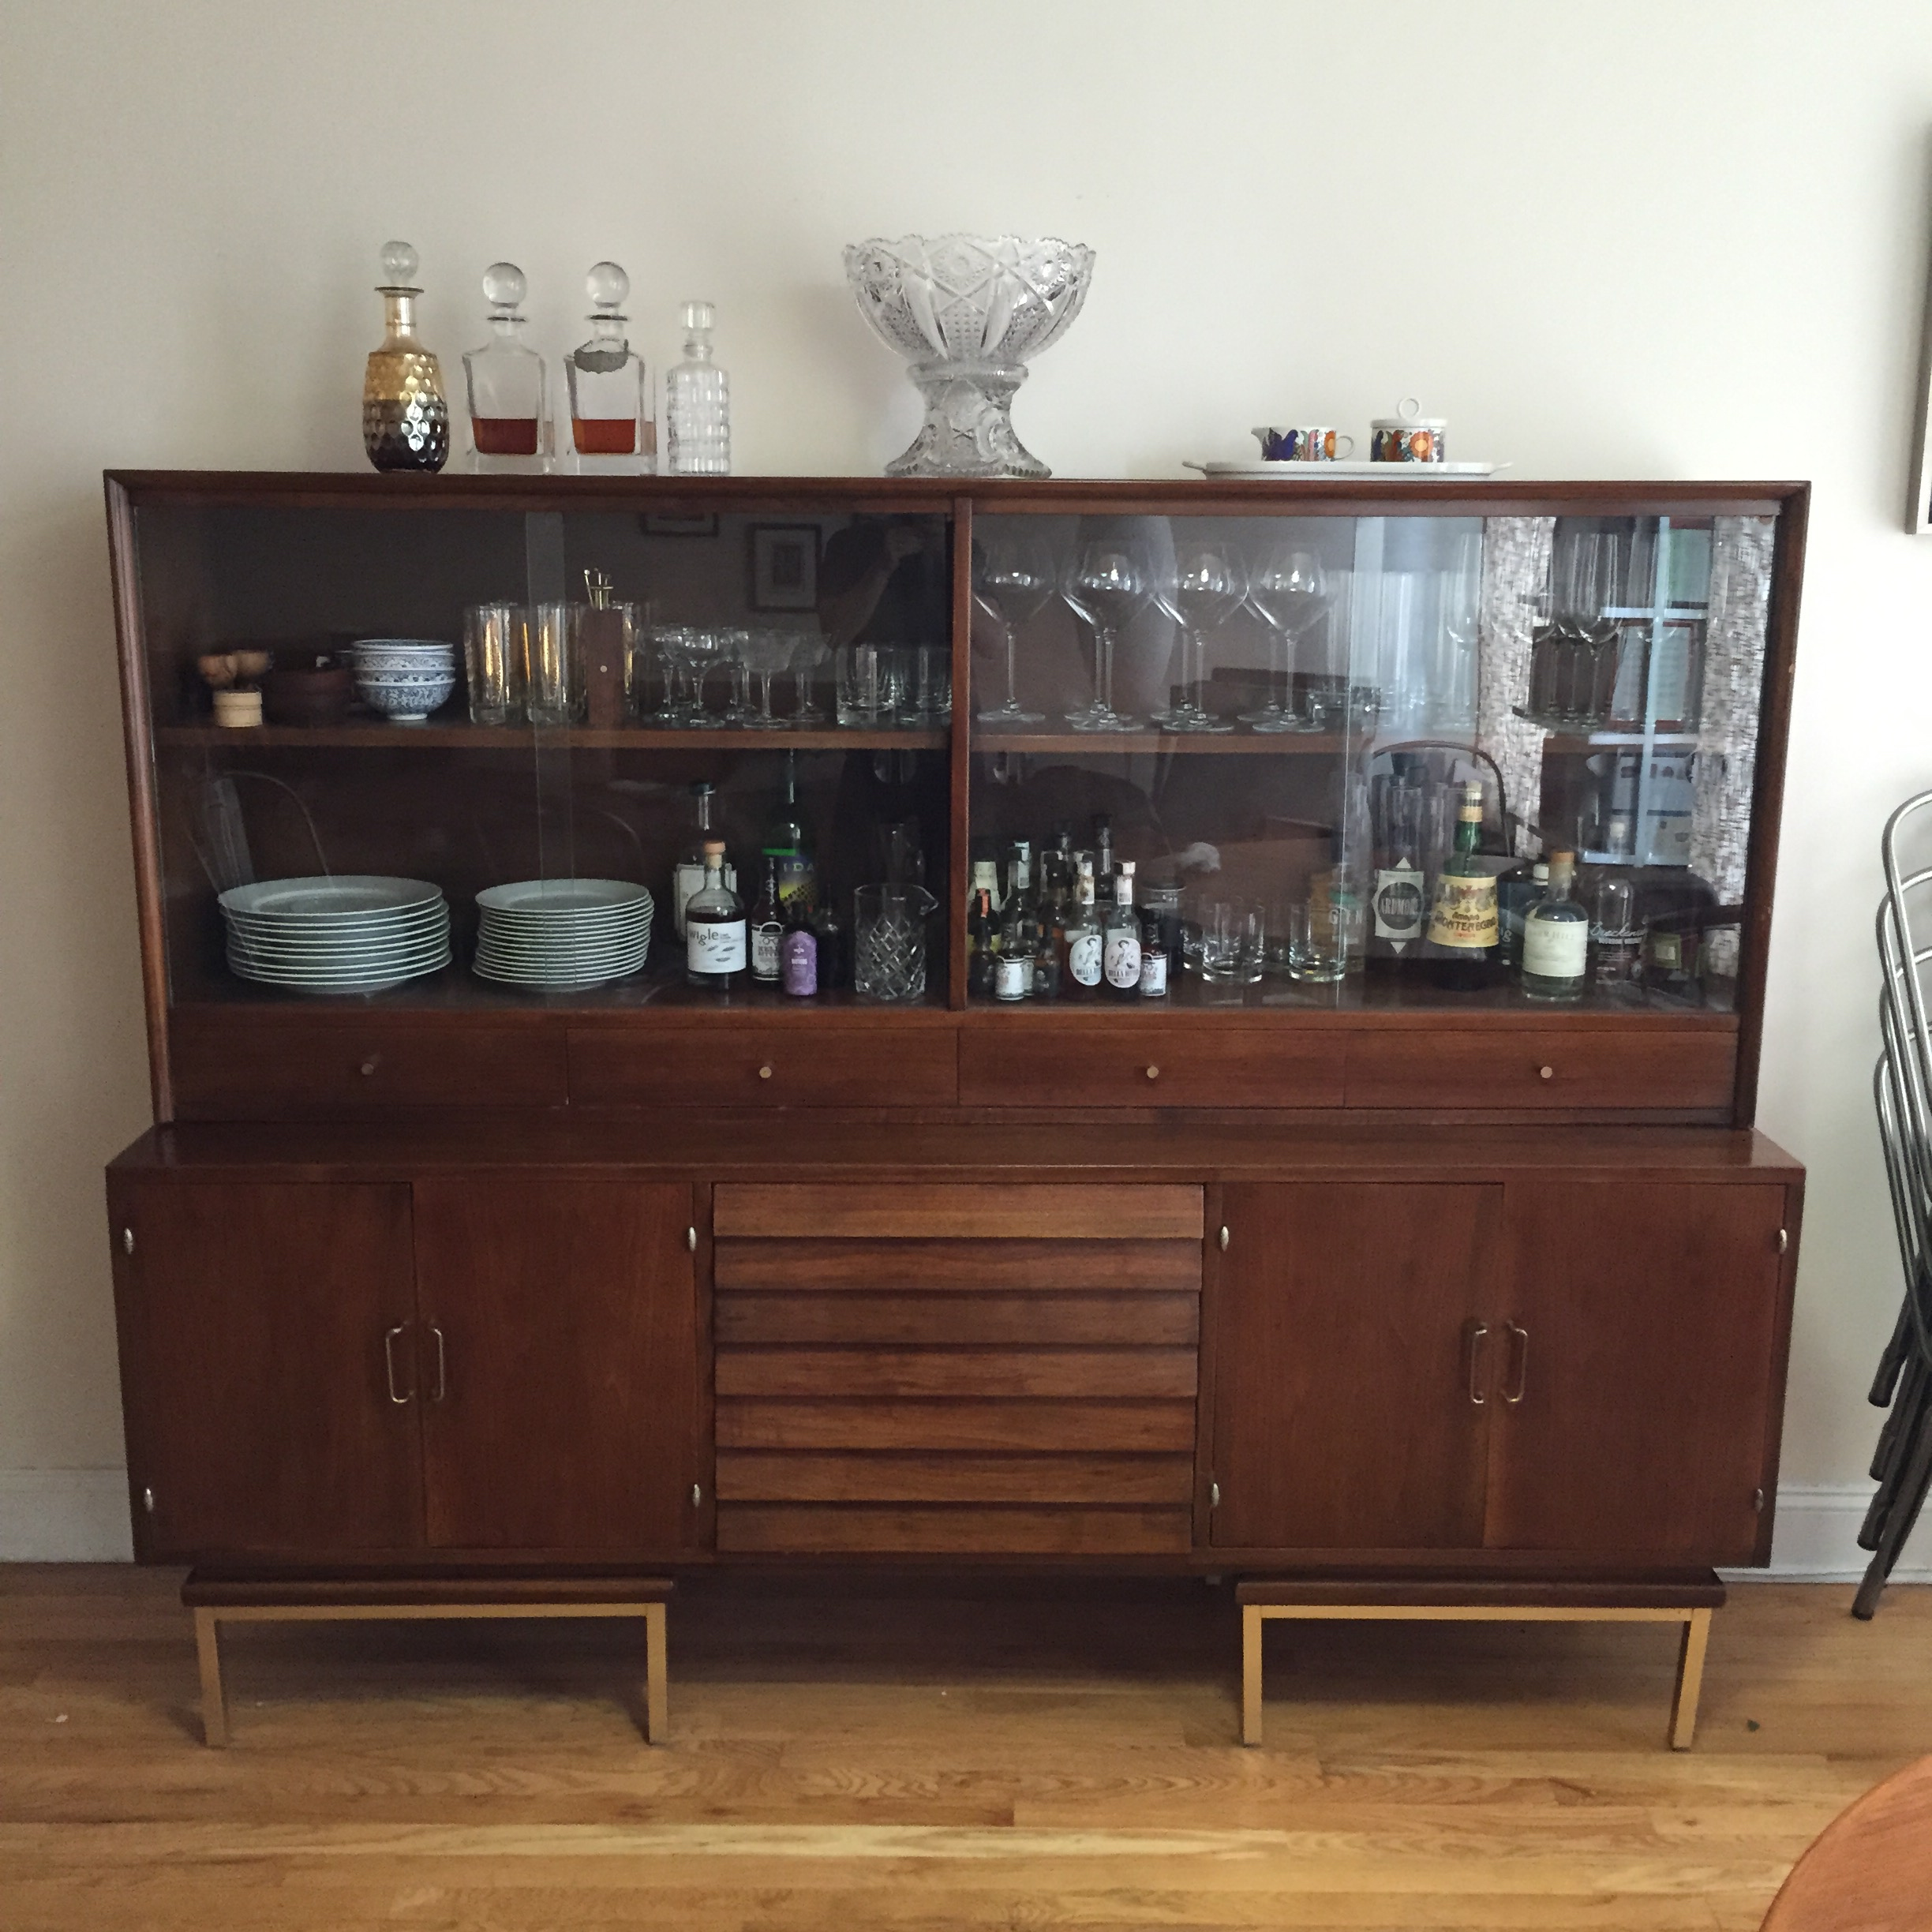 52 Basement Bar Build Building A Basement Bar Barplancom: Real Solutions: Michael Hoffman's Repurposed Credenza Bar